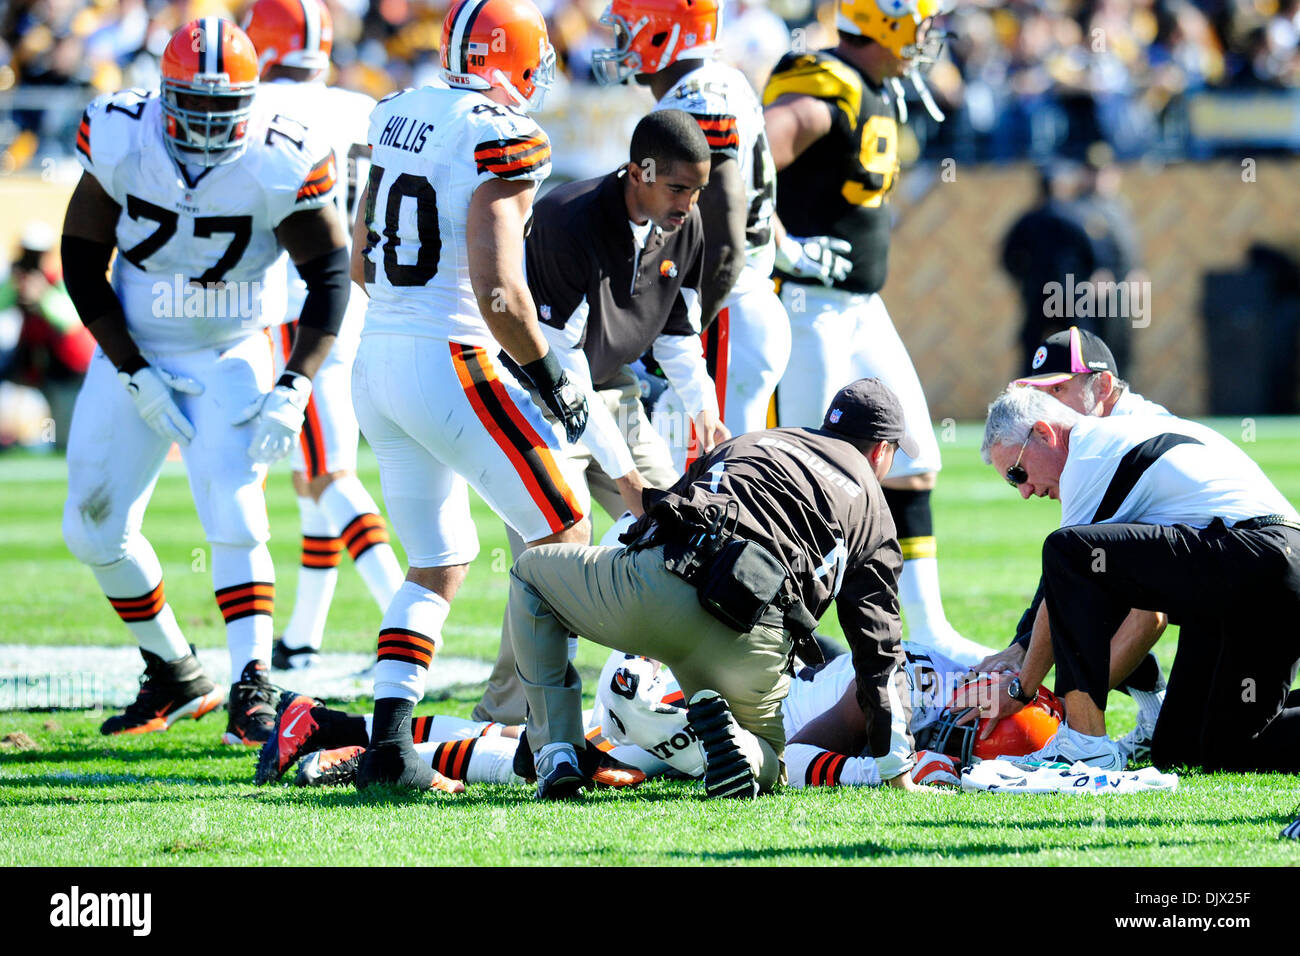 Oct. 17, 2010 - Pittsburgh, Pennsylvania, United States of America - 17 October 2010: Cleveland medical staff attend to Joshua Cribbs (#16) who was knocked out by Steeler LB James Harrison at Heinz Field in Pittsburgh Pennsylvania. Pittsburgh defeats Cleveland 28-10. (Credit Image: © Paul Lindenfelser/Southcreek Global/ZUMApress.com) - Stock Image